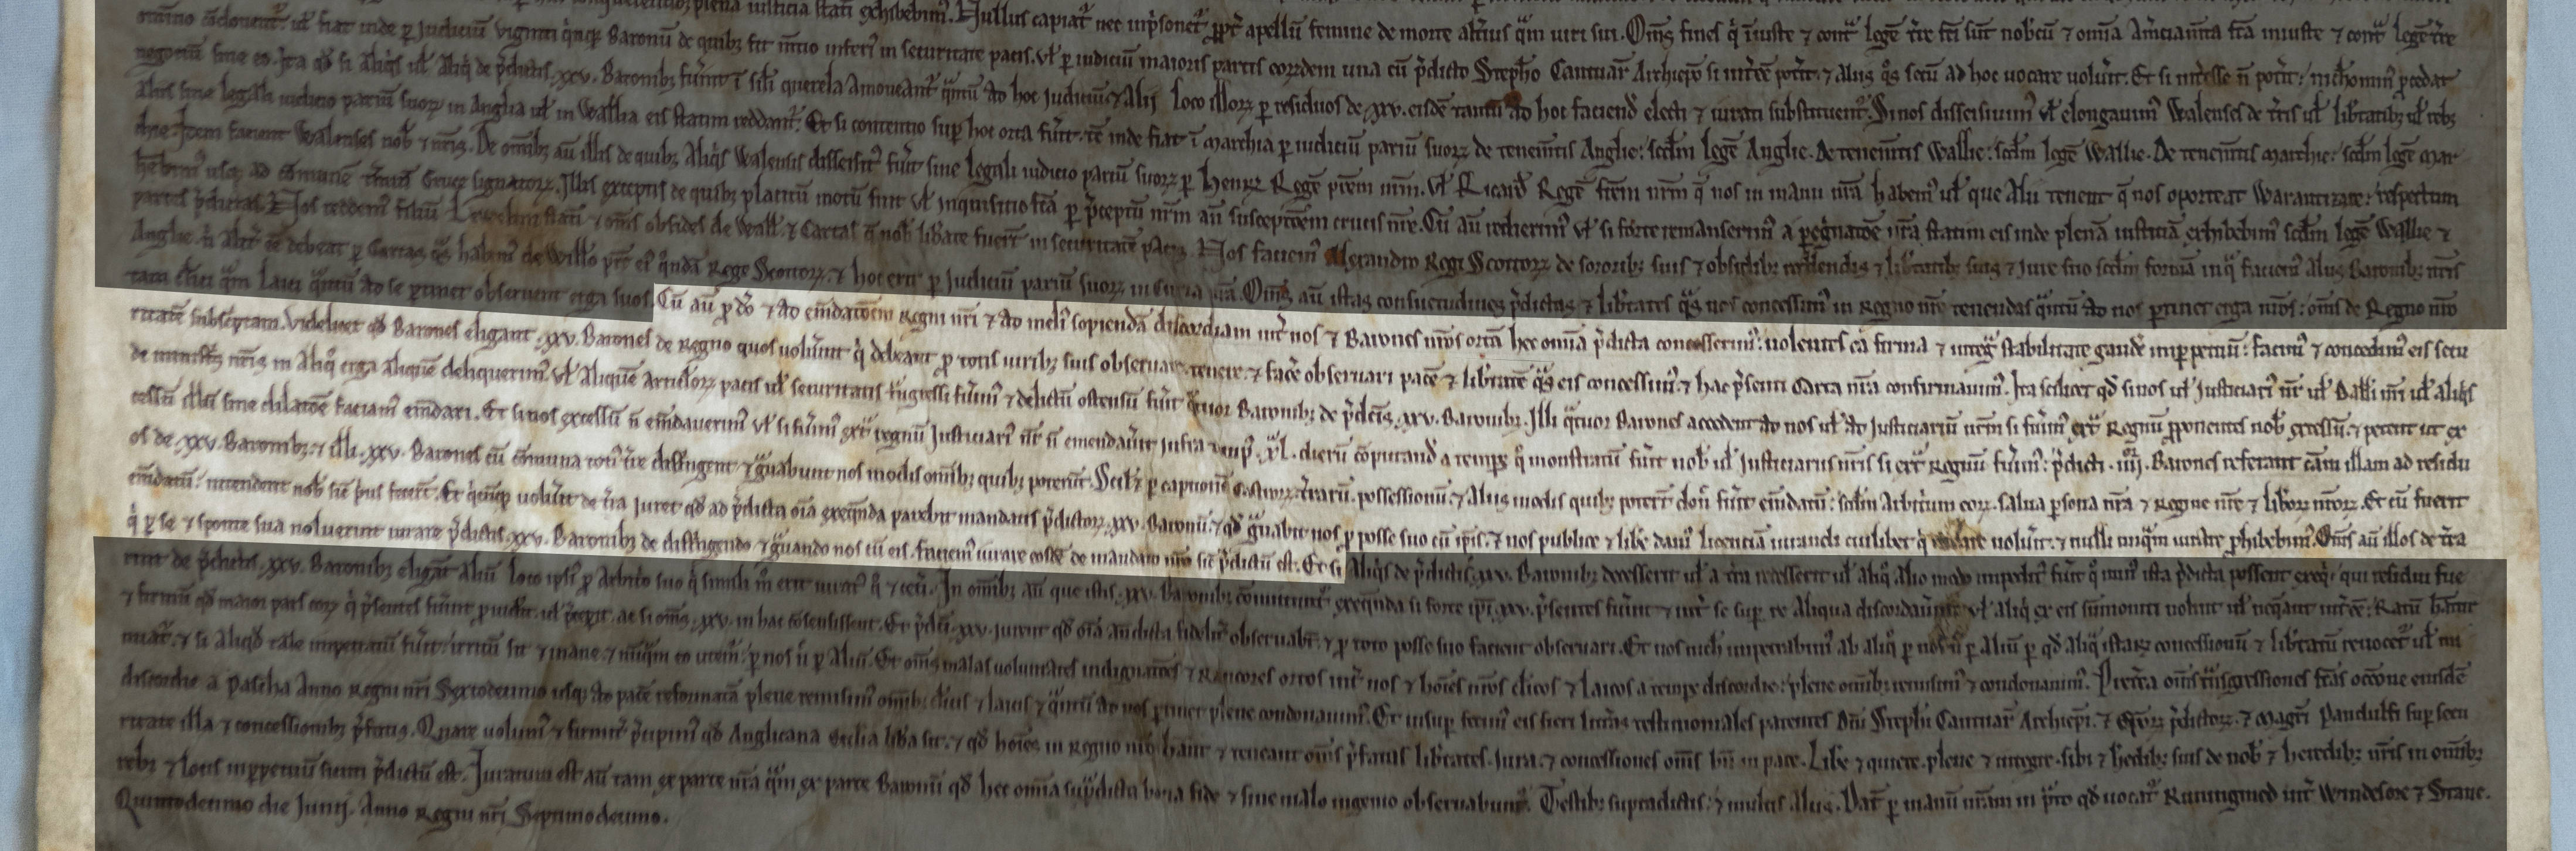 Clause 61 of Magna Carta 1215